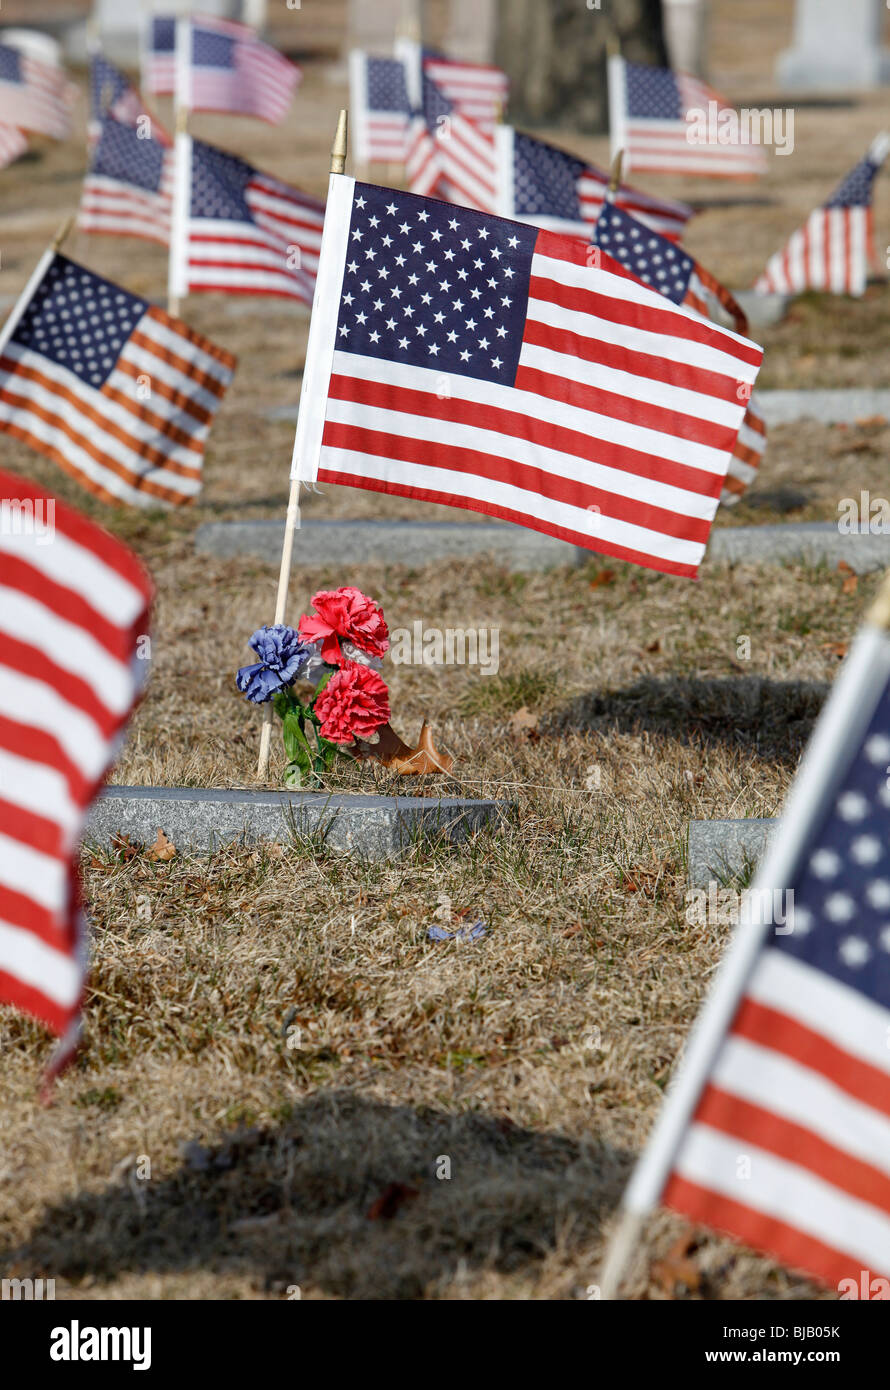 Unites States flags on grave sites at a military cemetery, Providence, Rhode Island - Stock Image